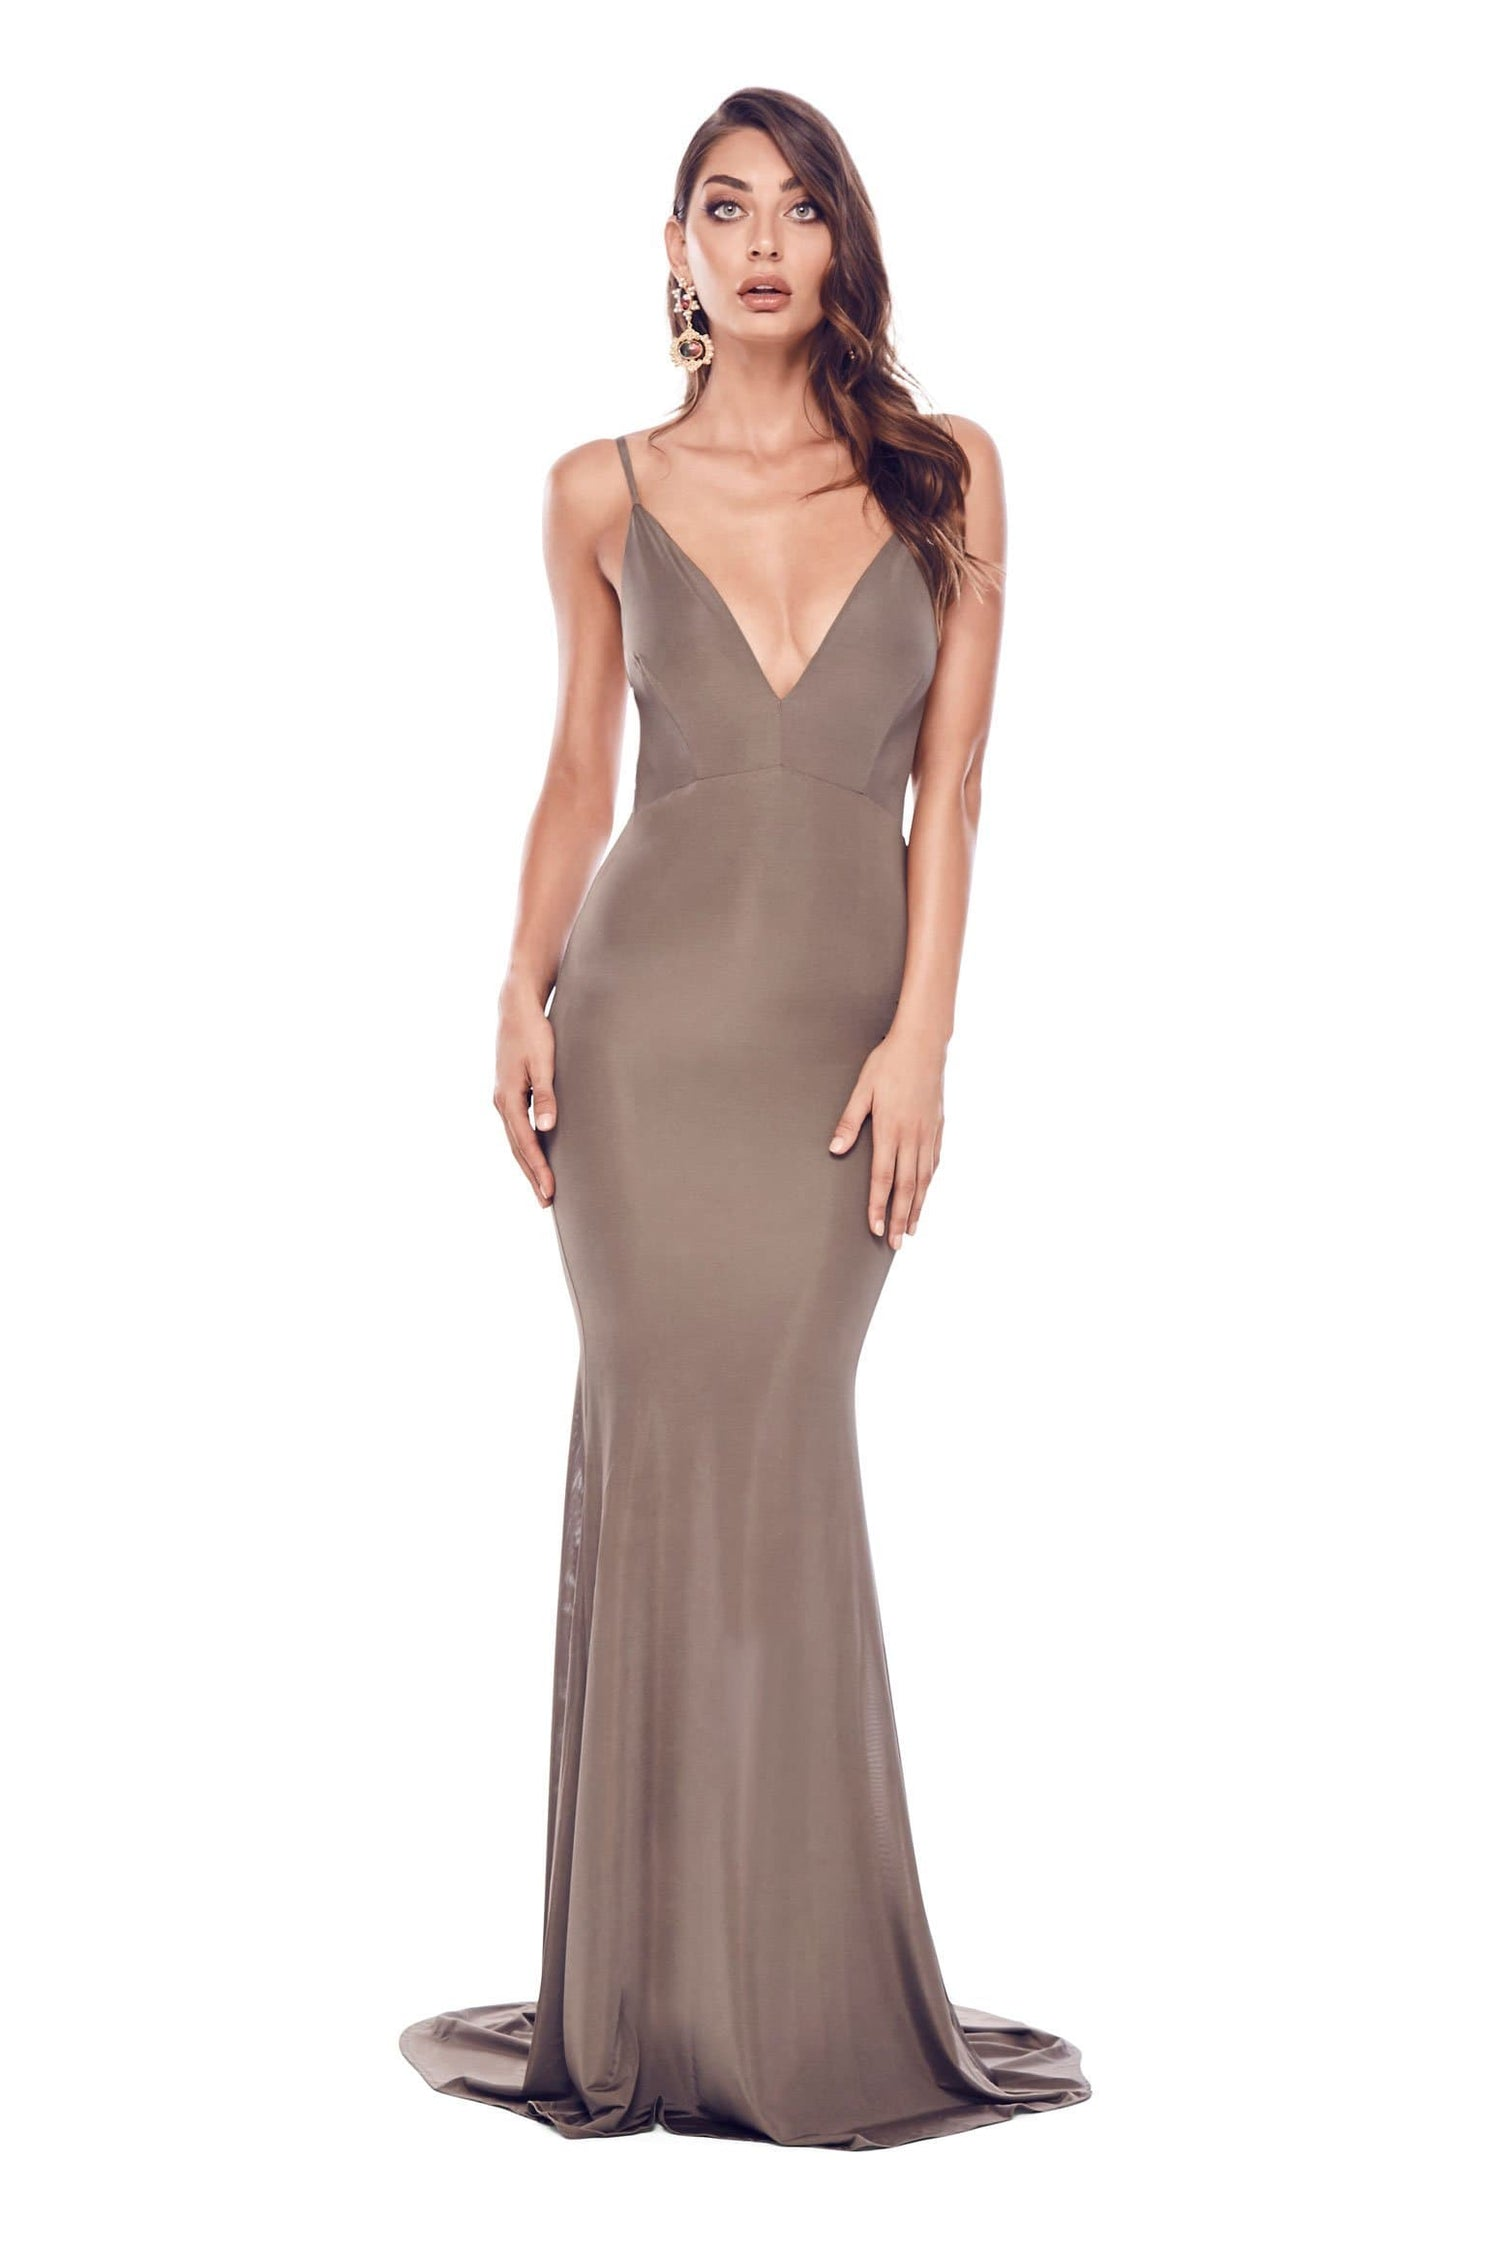 Selina - Olive Backless Jersey Gown with Plunge Neckline